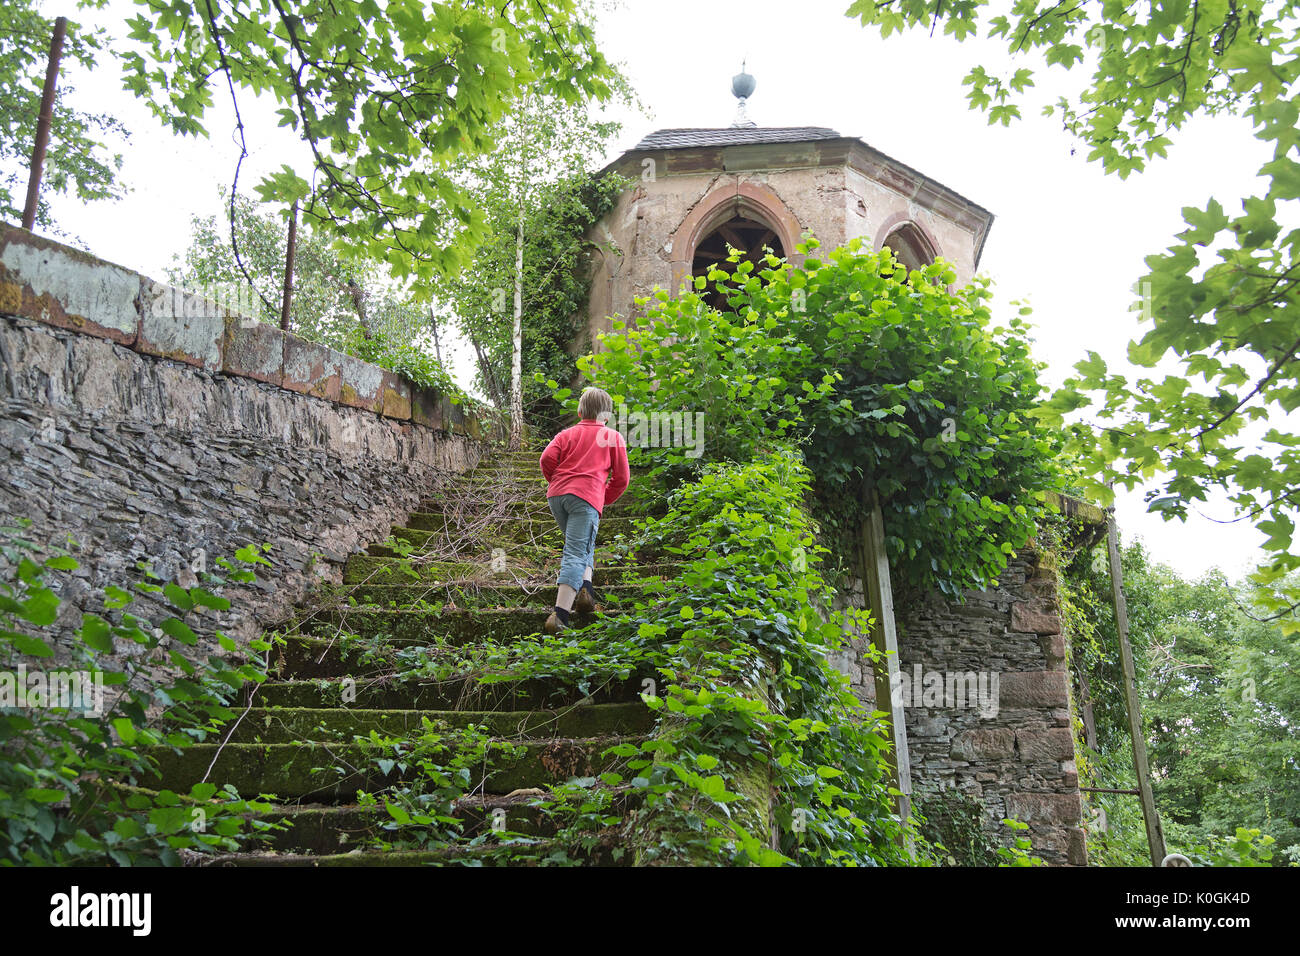 decaying tower, Saarburg, Rhineland-Palatinate, Germany - Stock Image